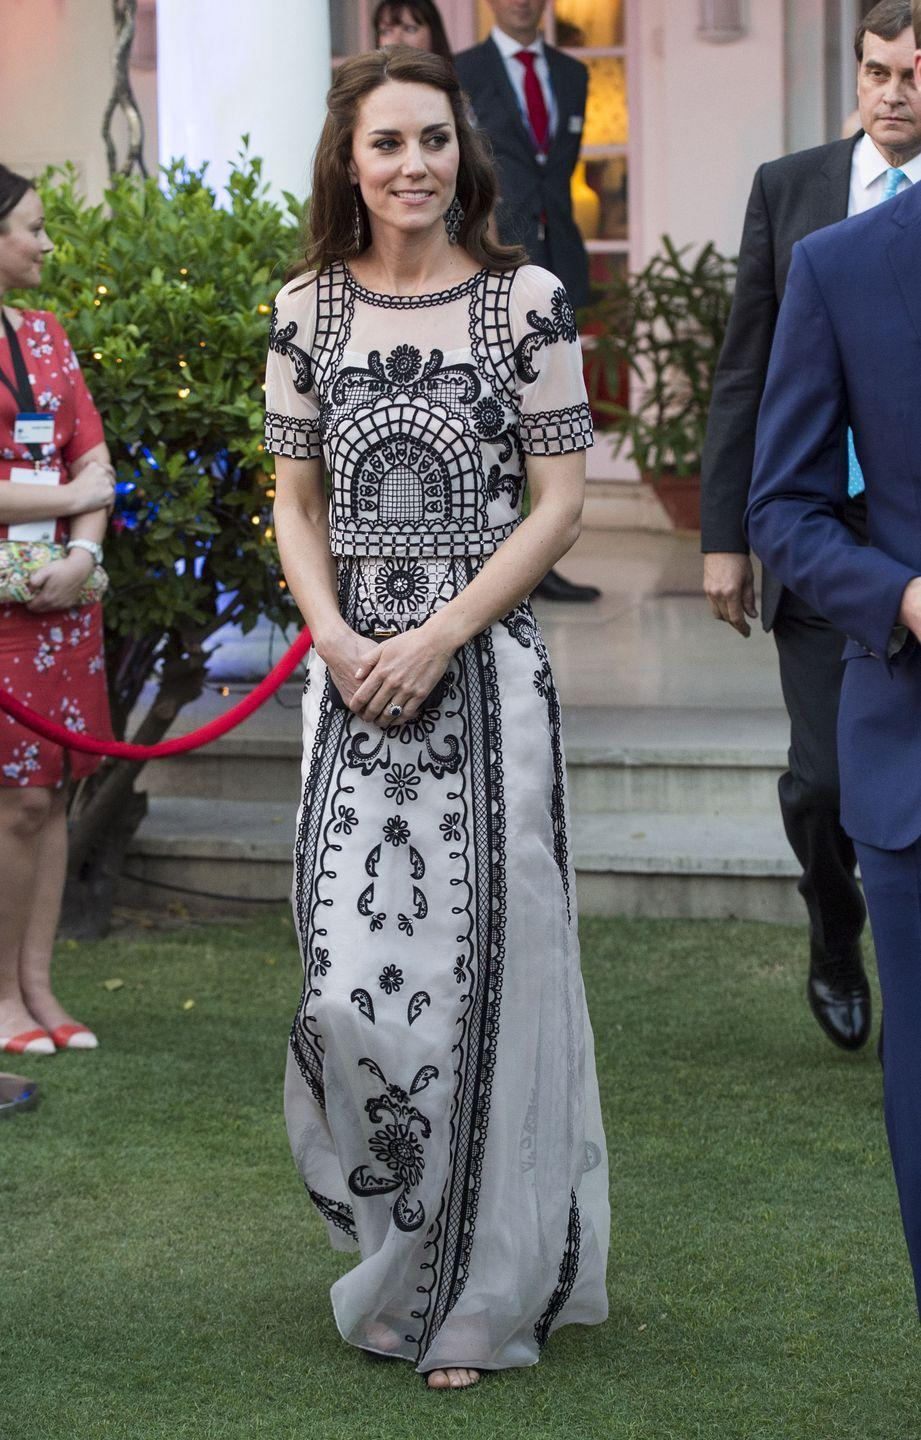 <p>Kate wears a white gown with black embroidery to a garden party celebrating the Queen's 90th birthday in New Dehli. </p>